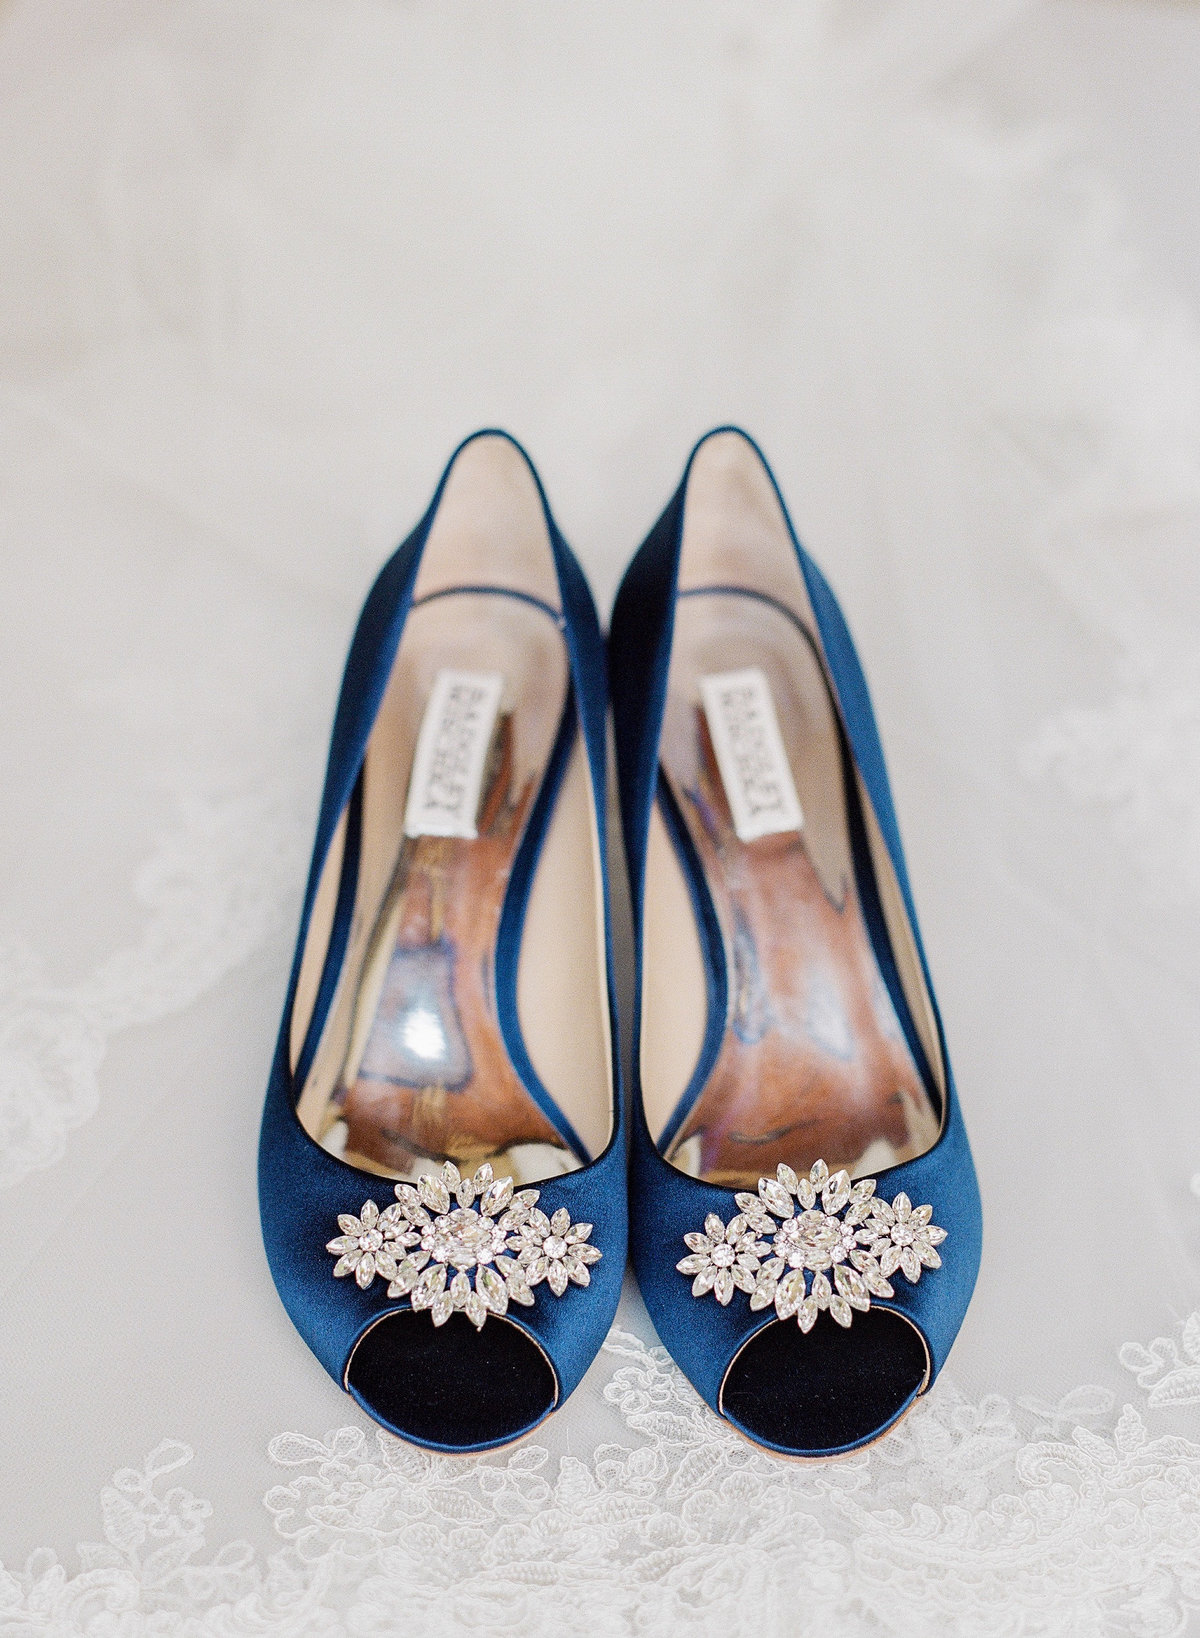 Montaluce Winery Wedding - Shoes